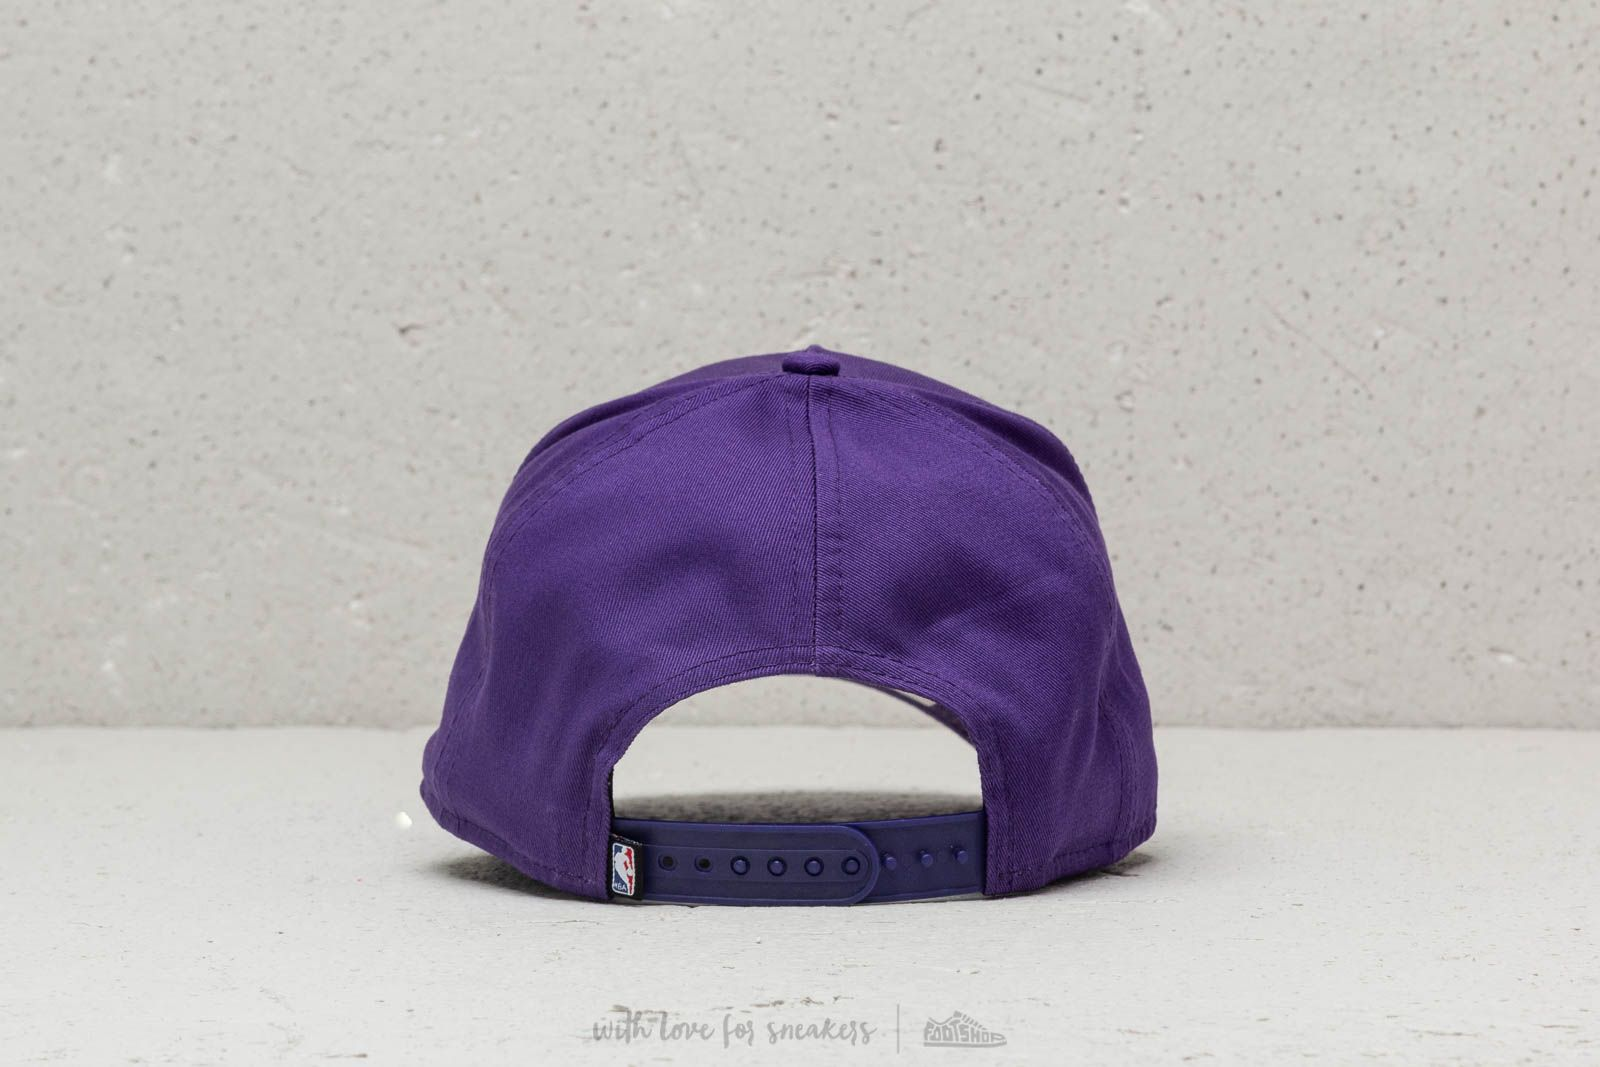 70e791a83e104 New Era NBA Team LA Lakers A-Frame Snapback Purple at a great price  30